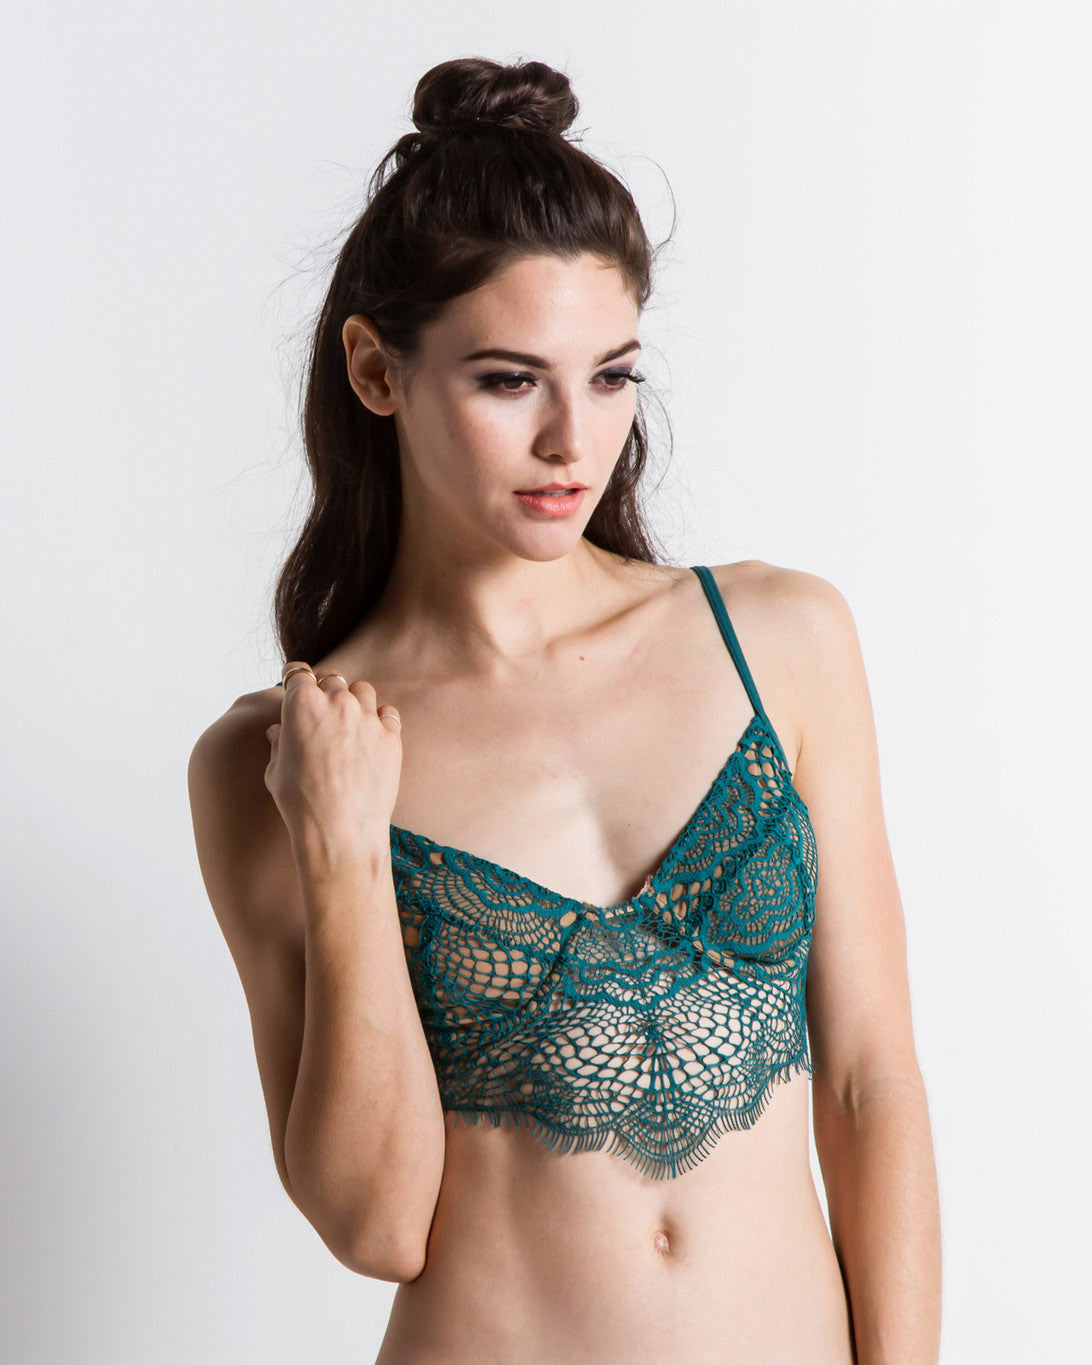 Women's Skivvies Bat Your Lashes Underwire Bra (Jade)